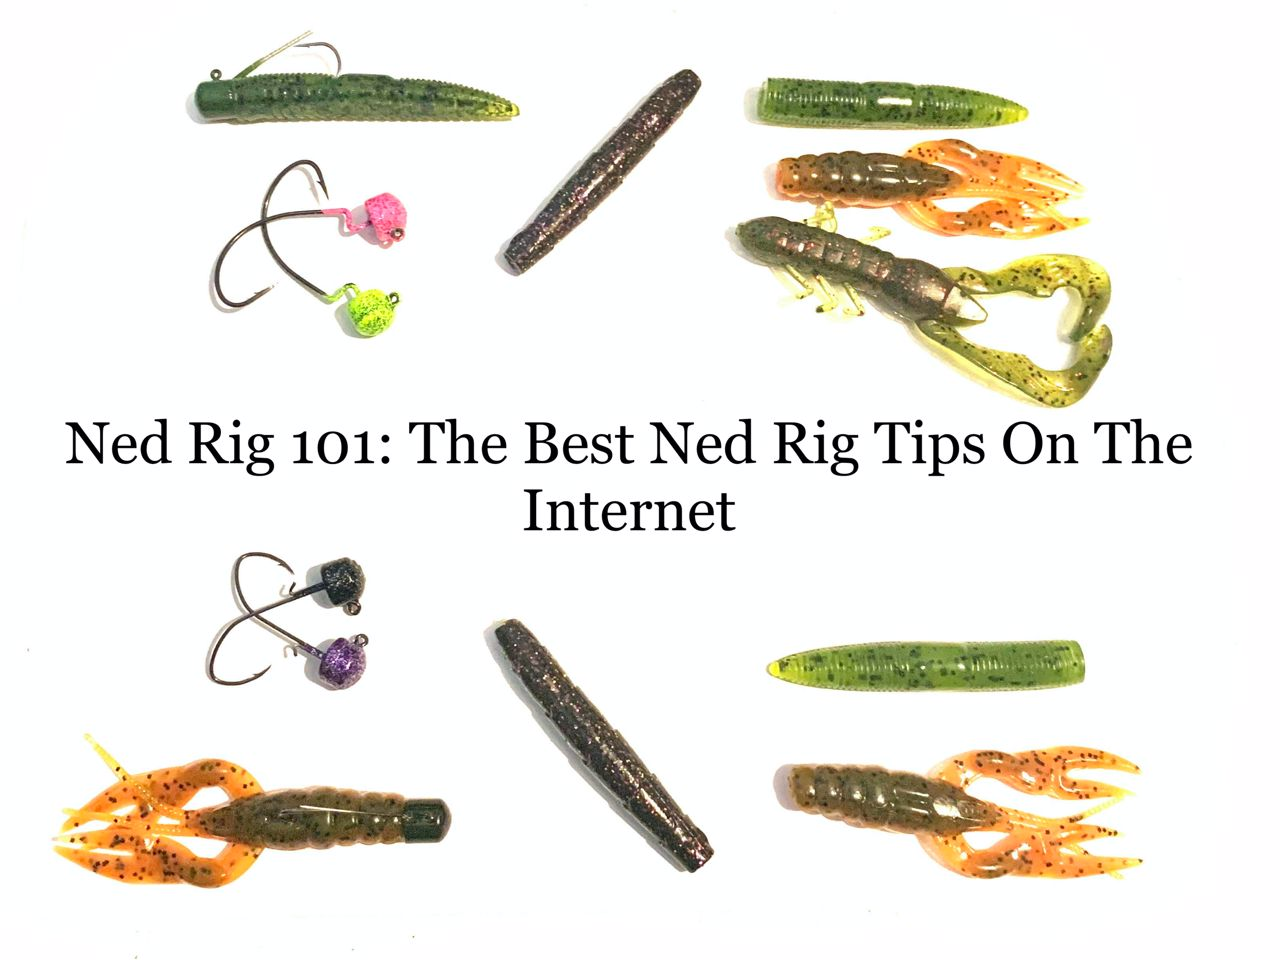 ned rig 101: the best ned rigging tips on the internet